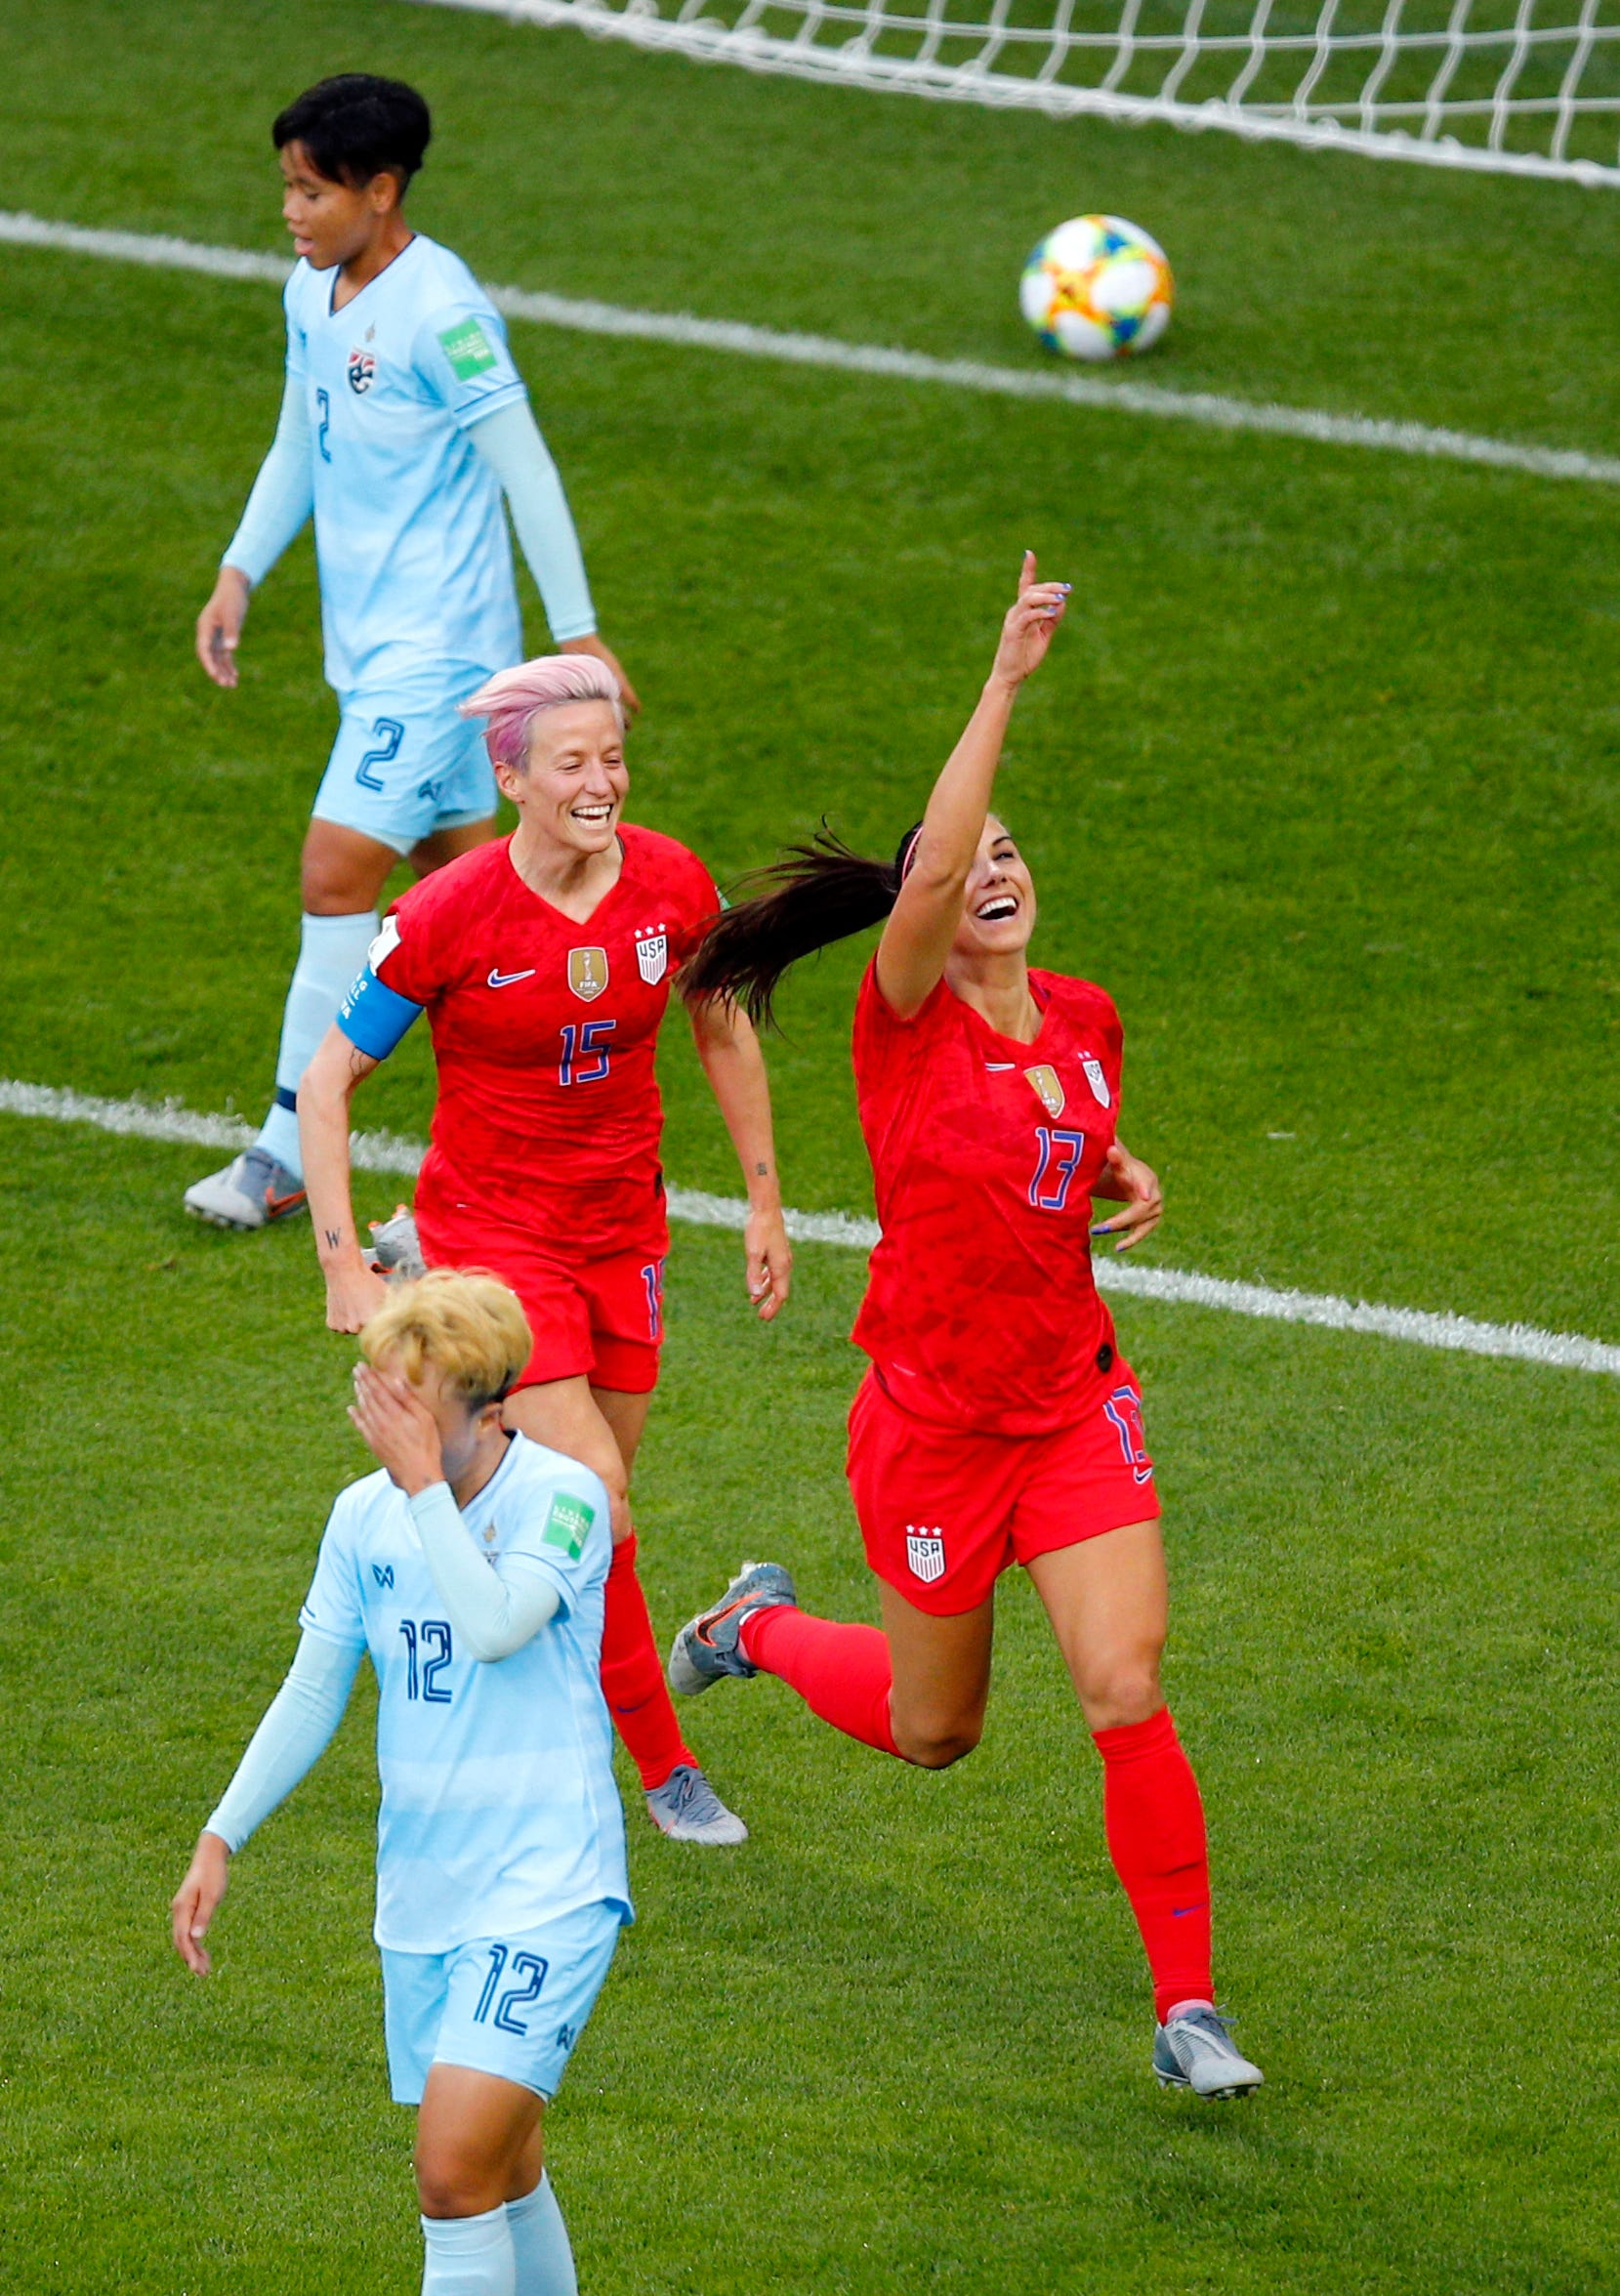 United States' Alex Morgan, right, celebrates after scoring her team's first goal during the Women's World Cup Group F soccer match between the USA and Thailand at the Stade Auguste-Delaune in Reims, France, Tuesday, June 11, 2019.